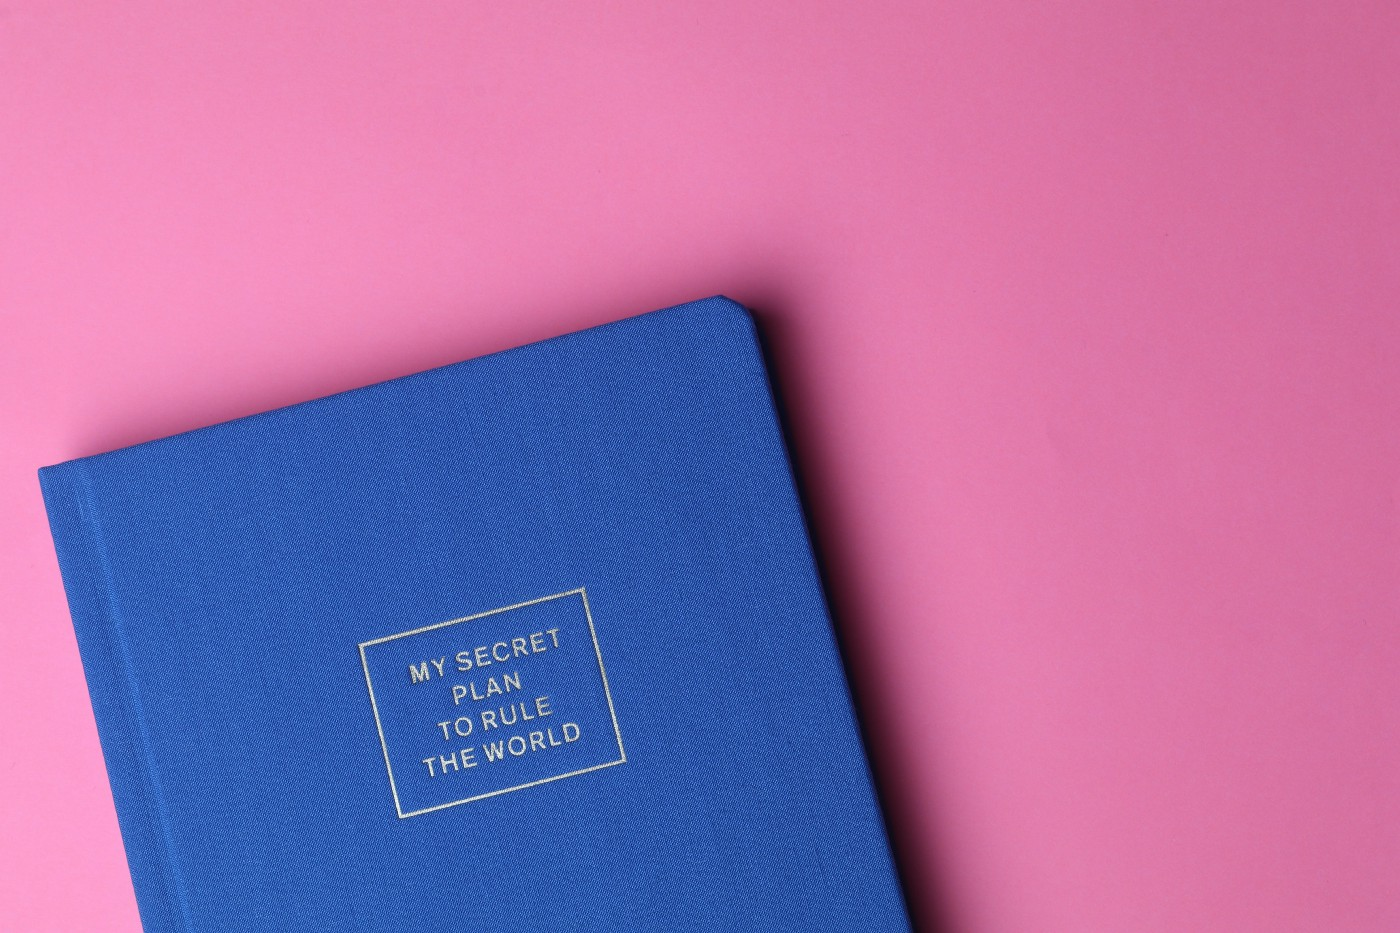 """Blue Diary with """"My Secret Plan to Rule the World Book"""" written on front cover, on pink background Nichola Scurry Medium"""